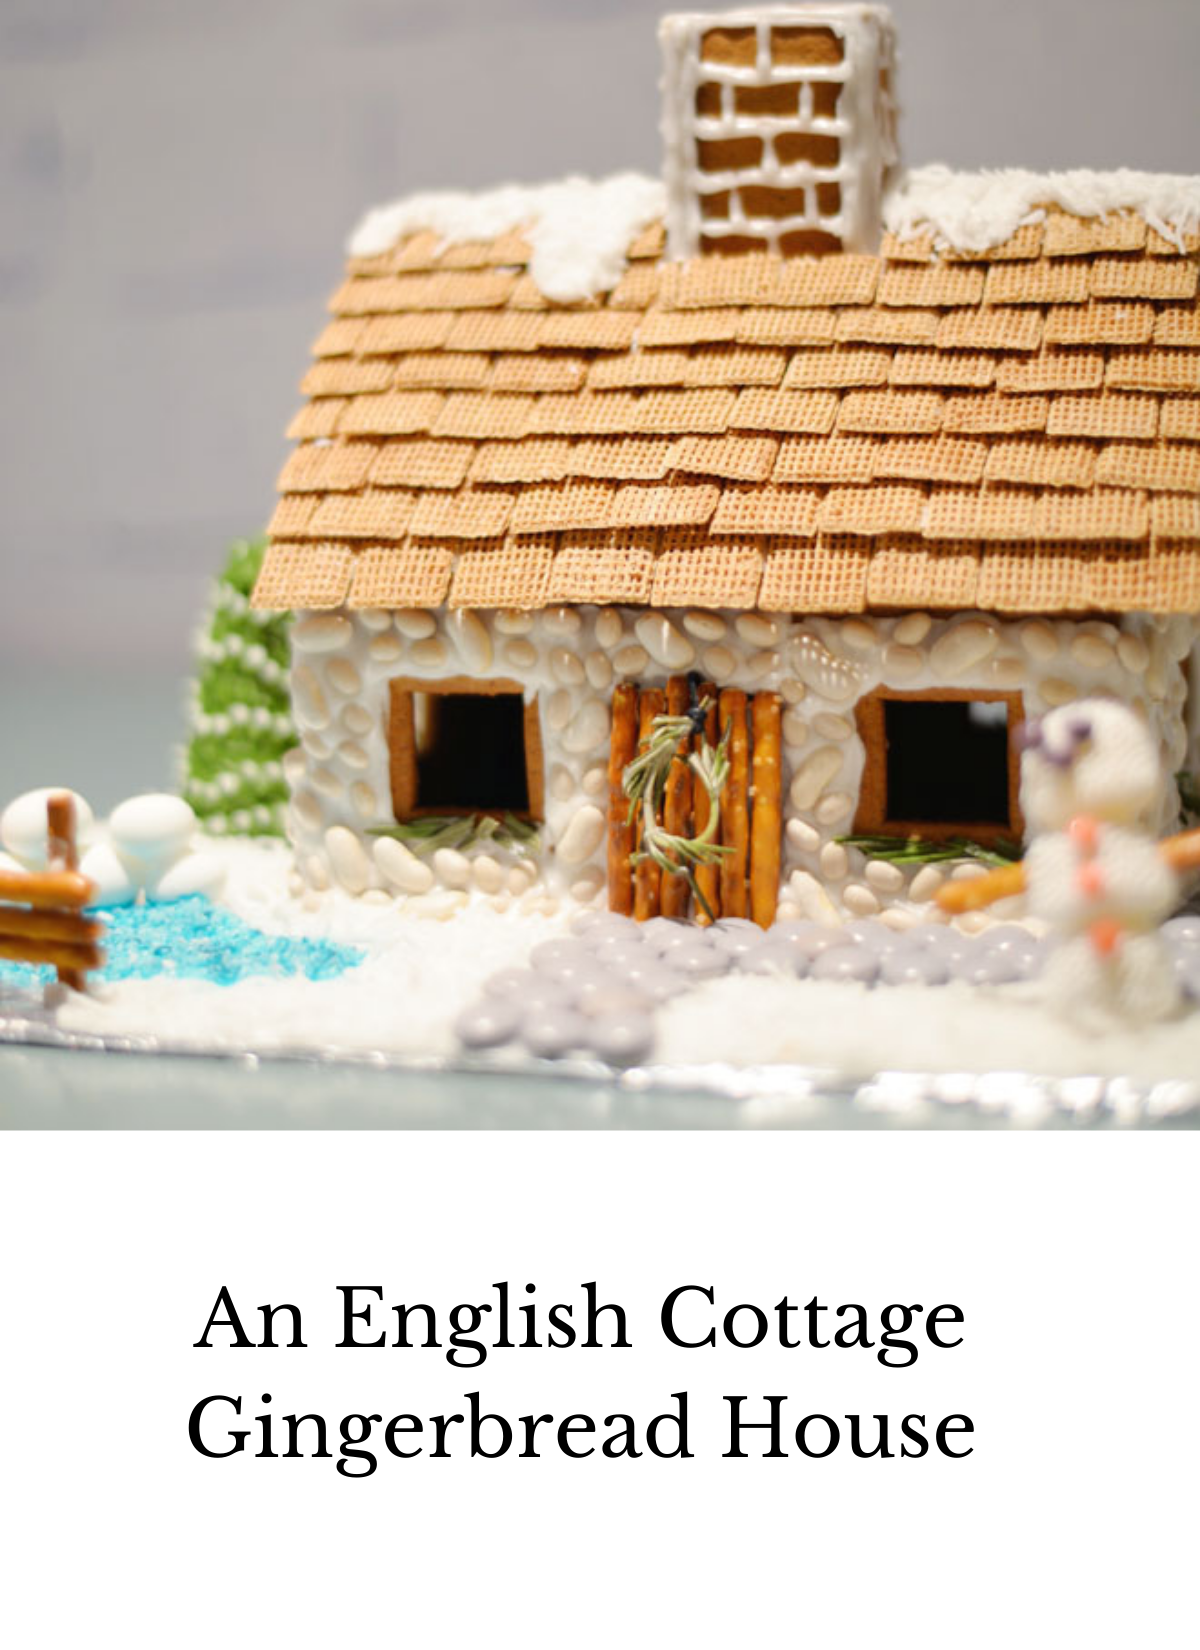 English cottage gingerbread house